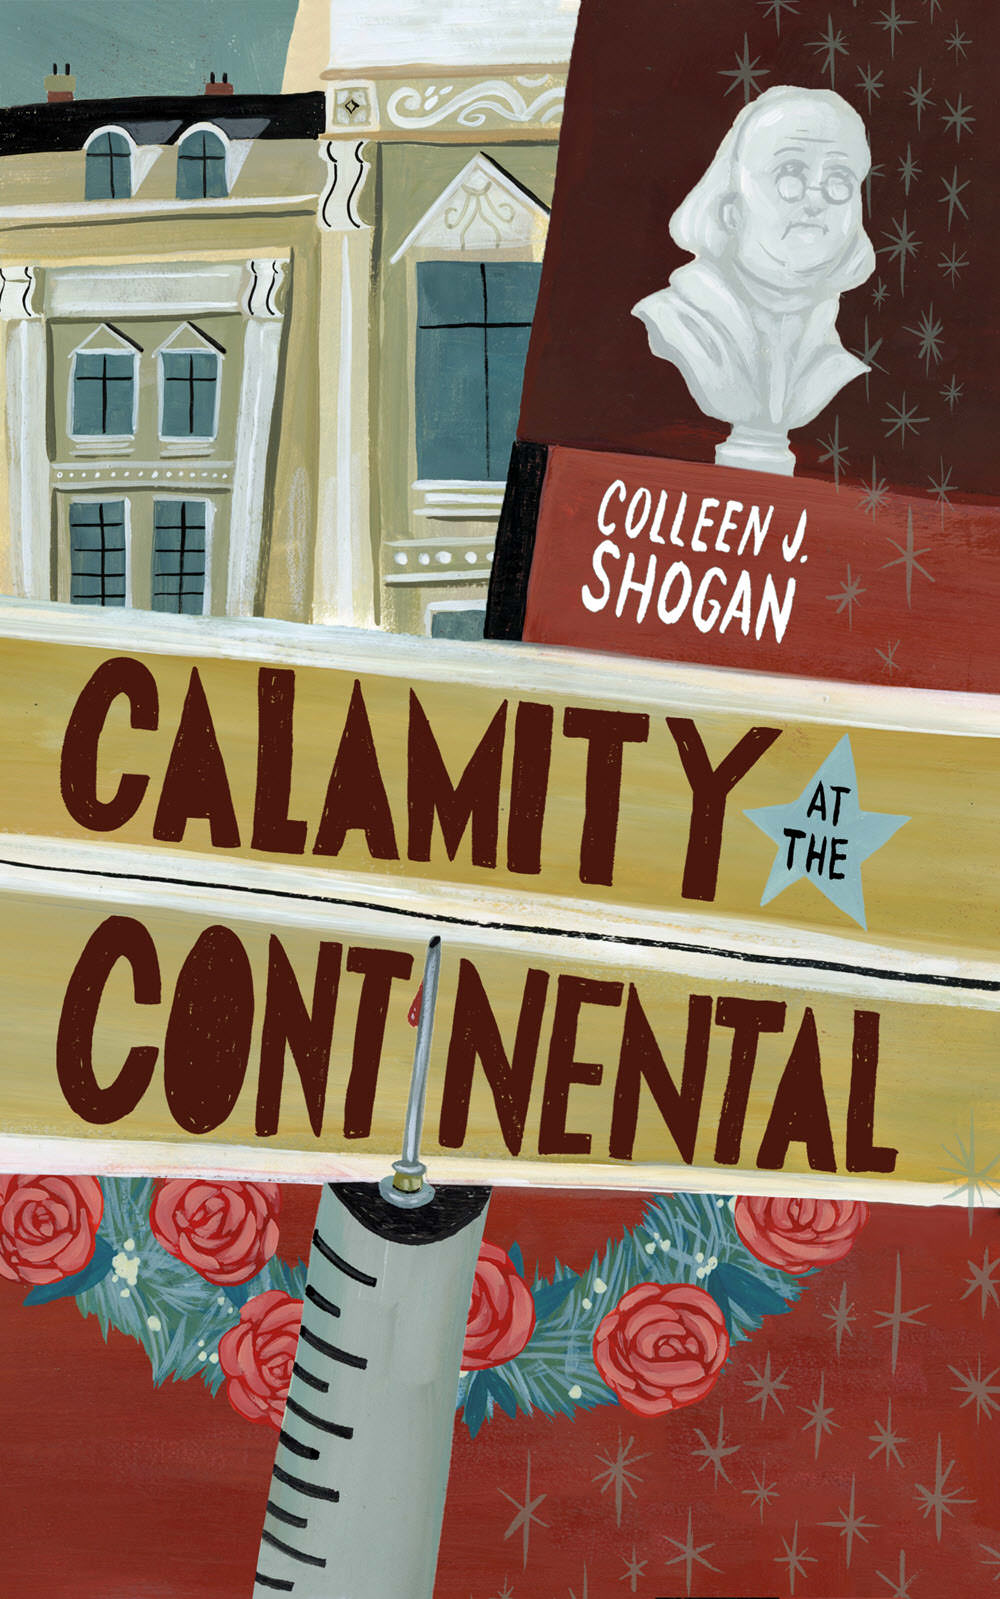 Calamity at the Continental - RG862